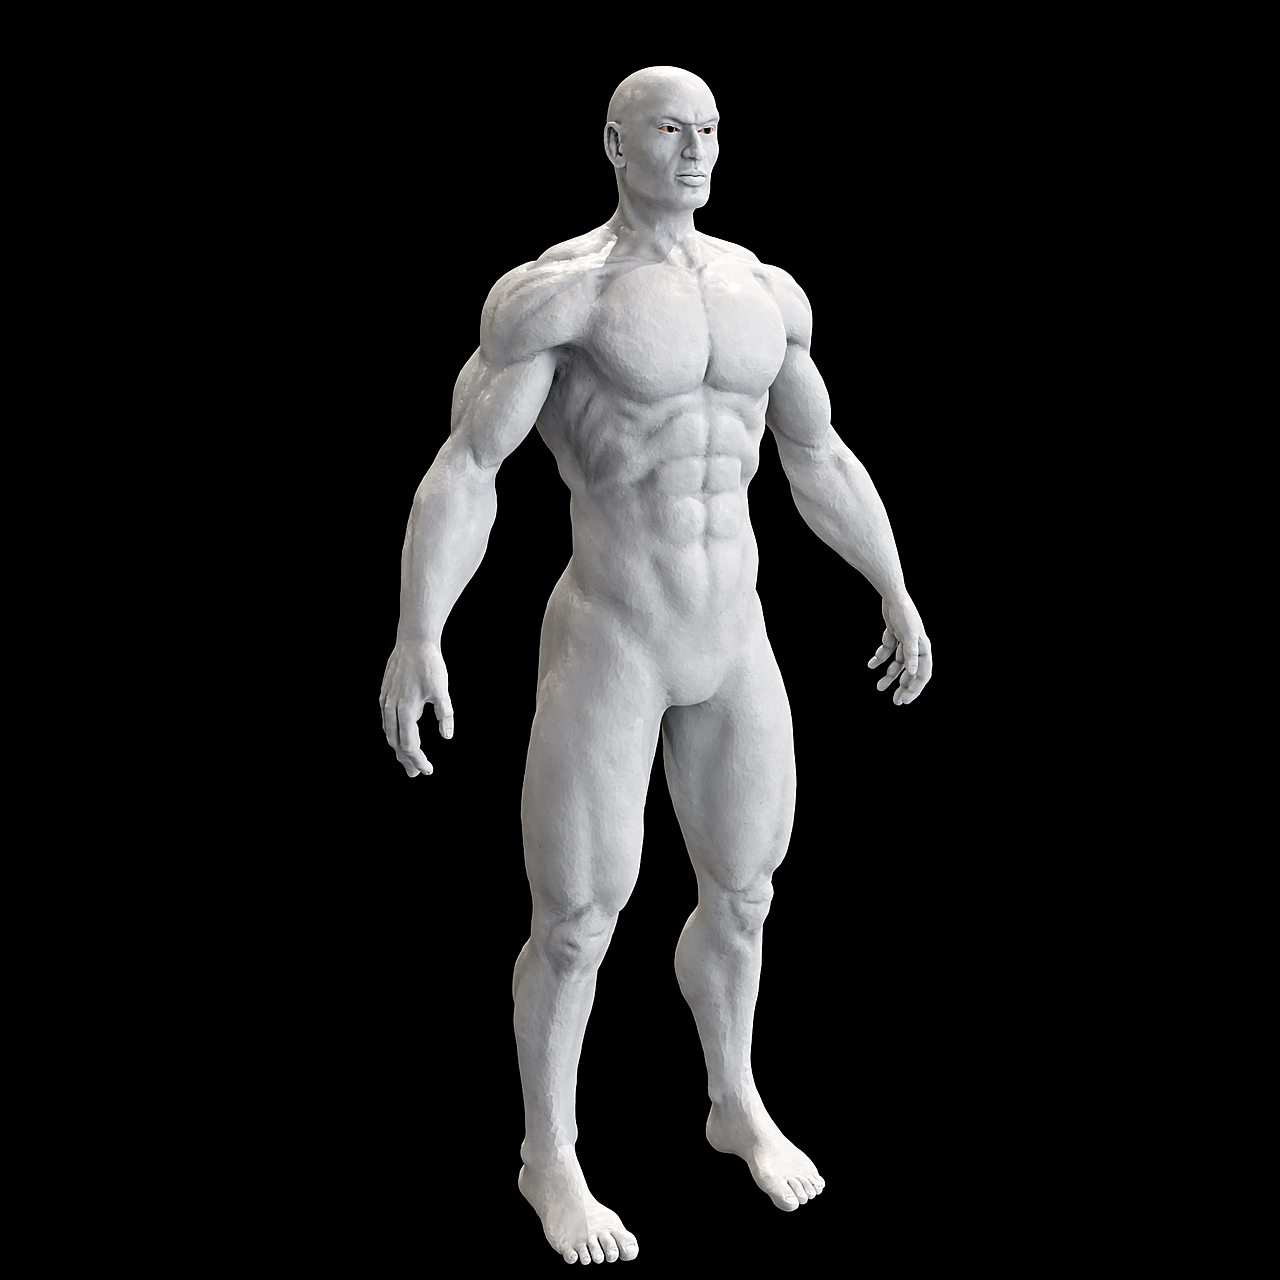 Practicing Human Sculpture - full body